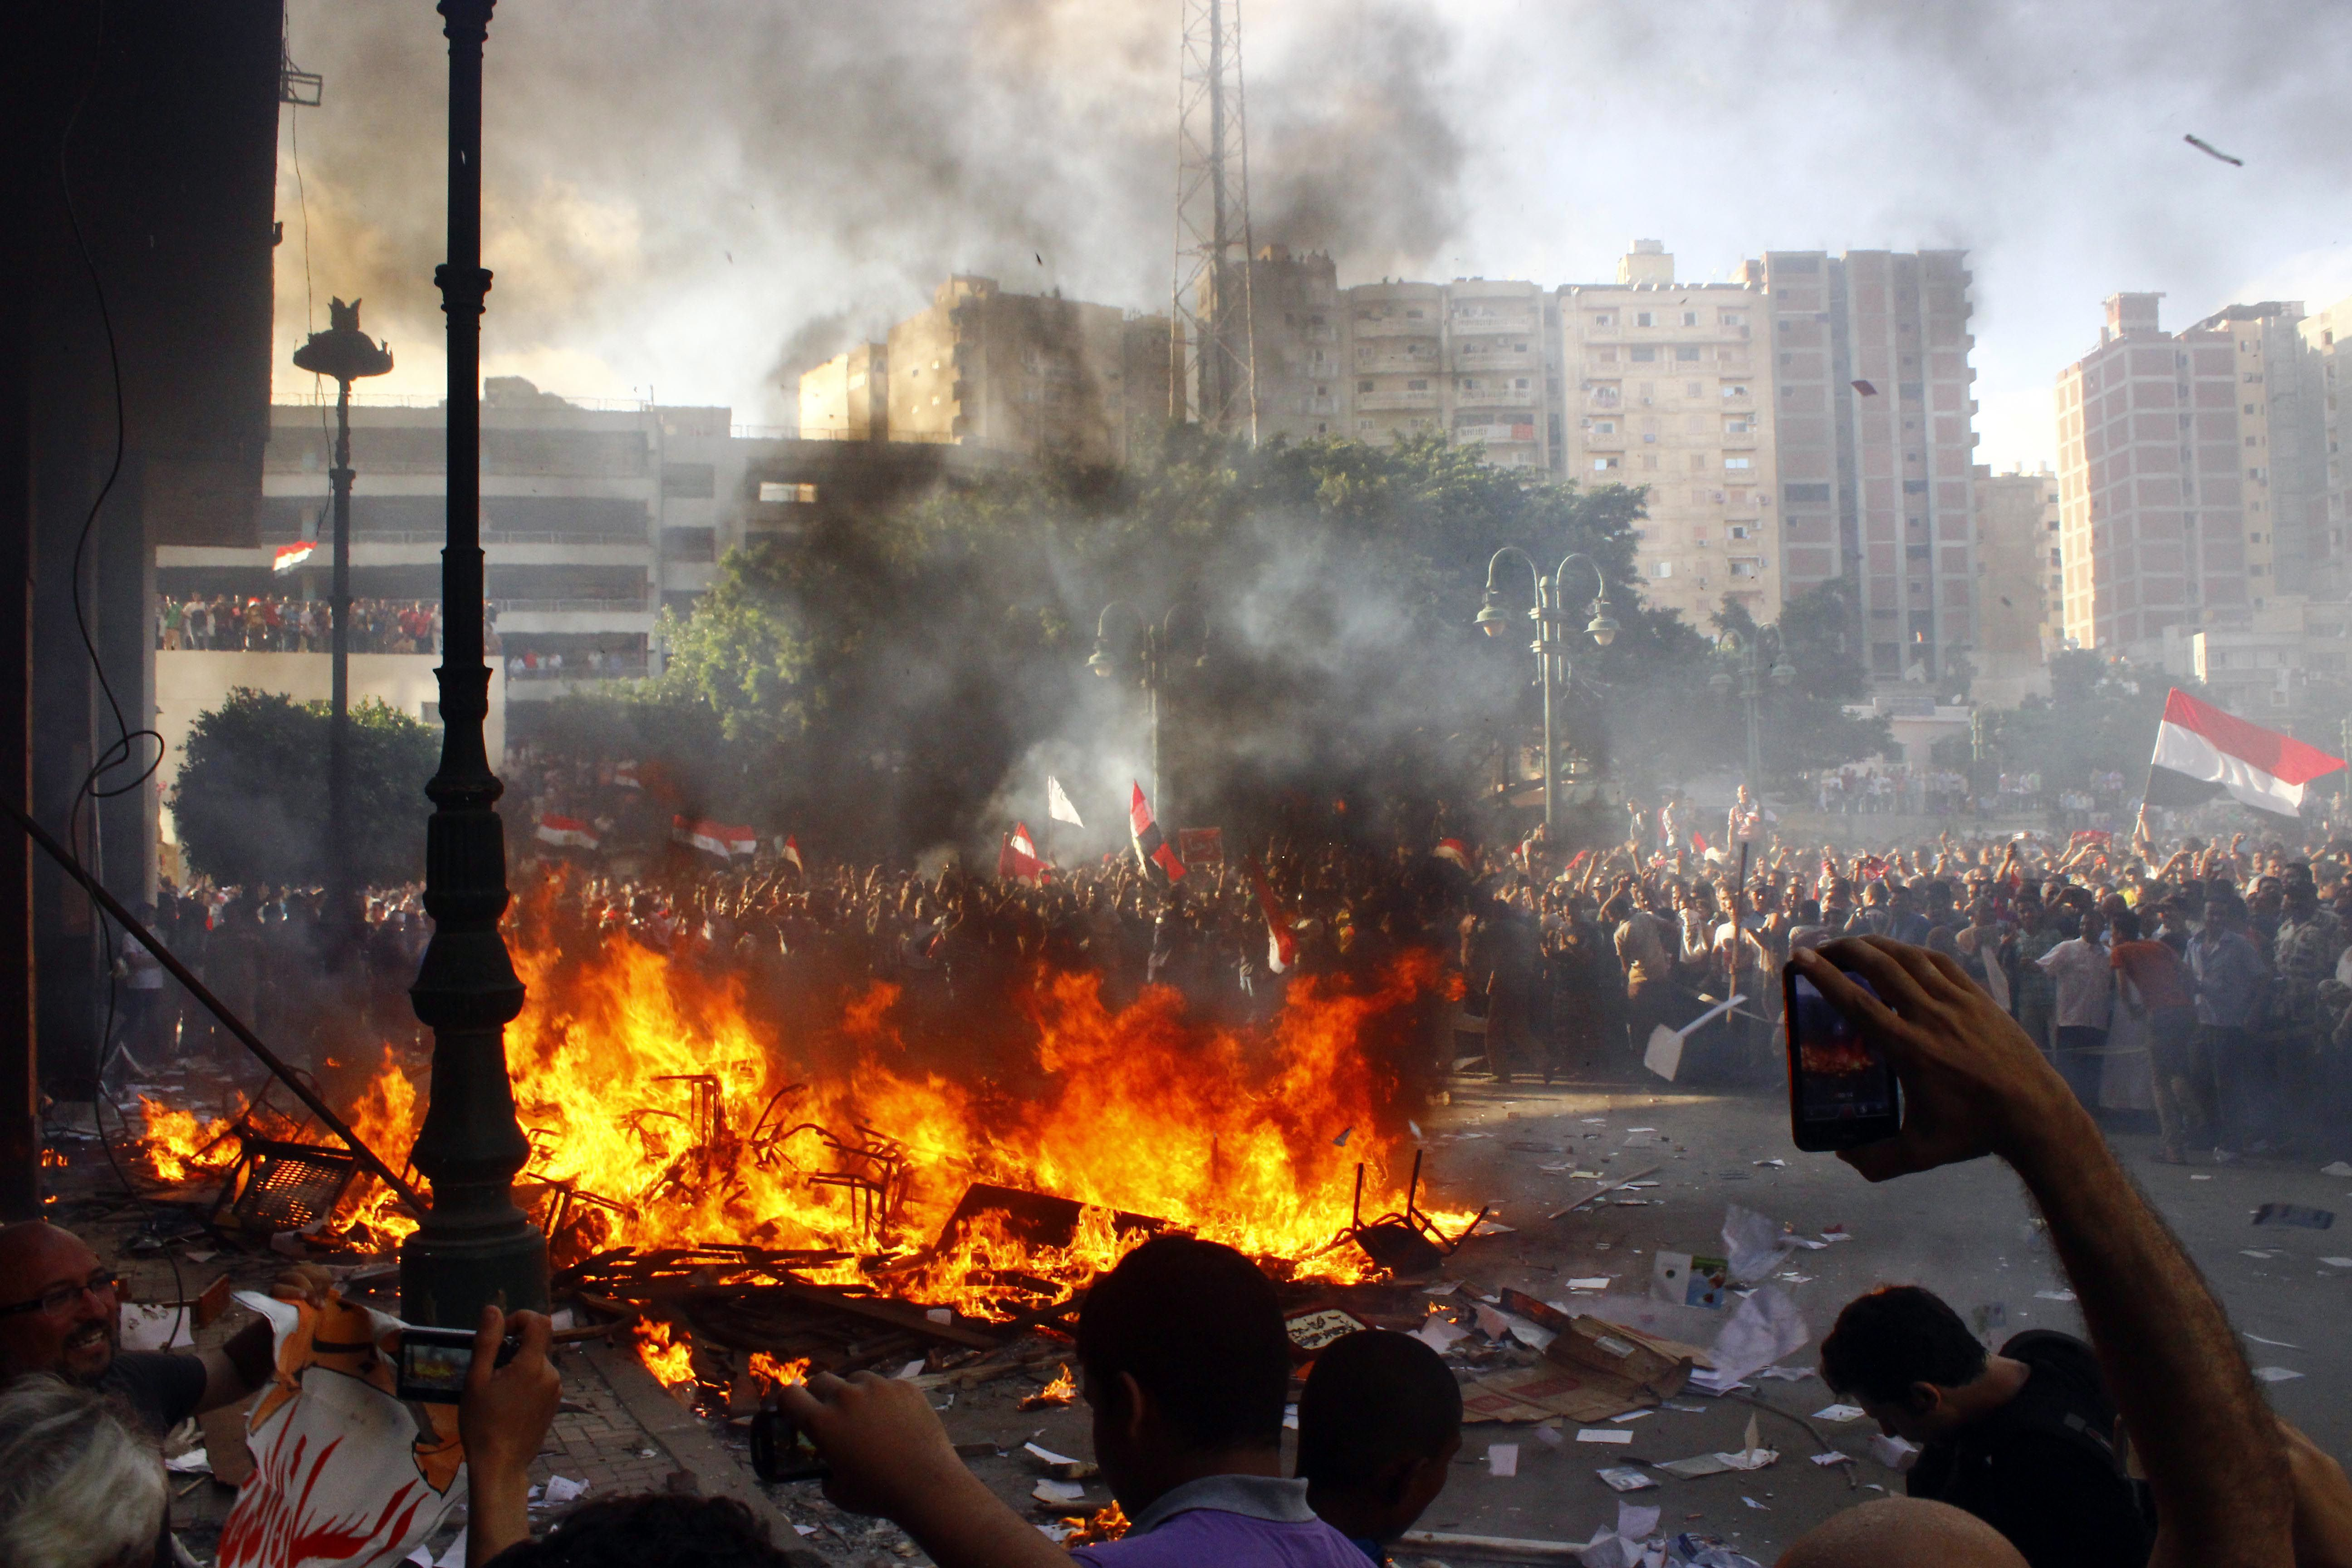 Opponents of Egyptian President Mohamed Morsi burn the content of a Freedom and Justice Party office in the coastal city of Alexandria on June 28, 2013. One person was killed and more than 70 injured in Egypt's second city of Alexandria on Friday as clashes raged between supporters and opponents of Islamist President Mohamed Morsi, state media reported.  (AFP PHOTO/STR)